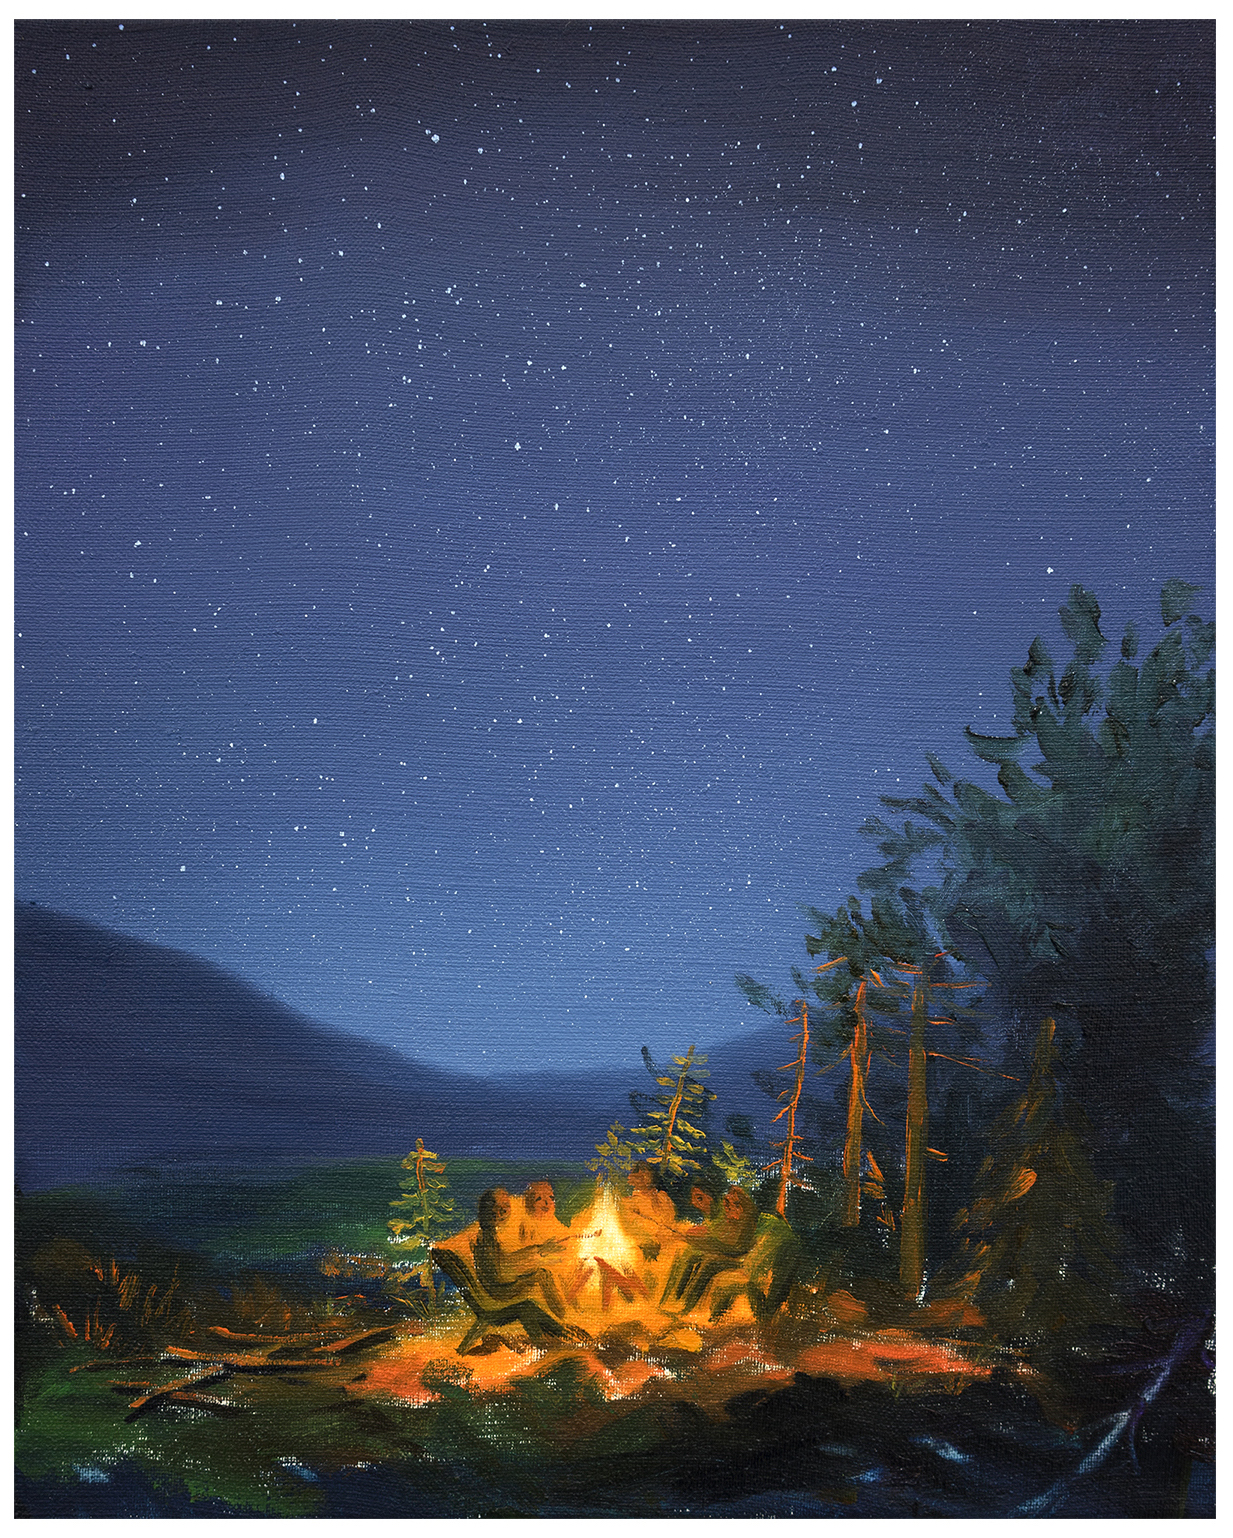 Campfire  Oil on linen  50x 40 cm  2018